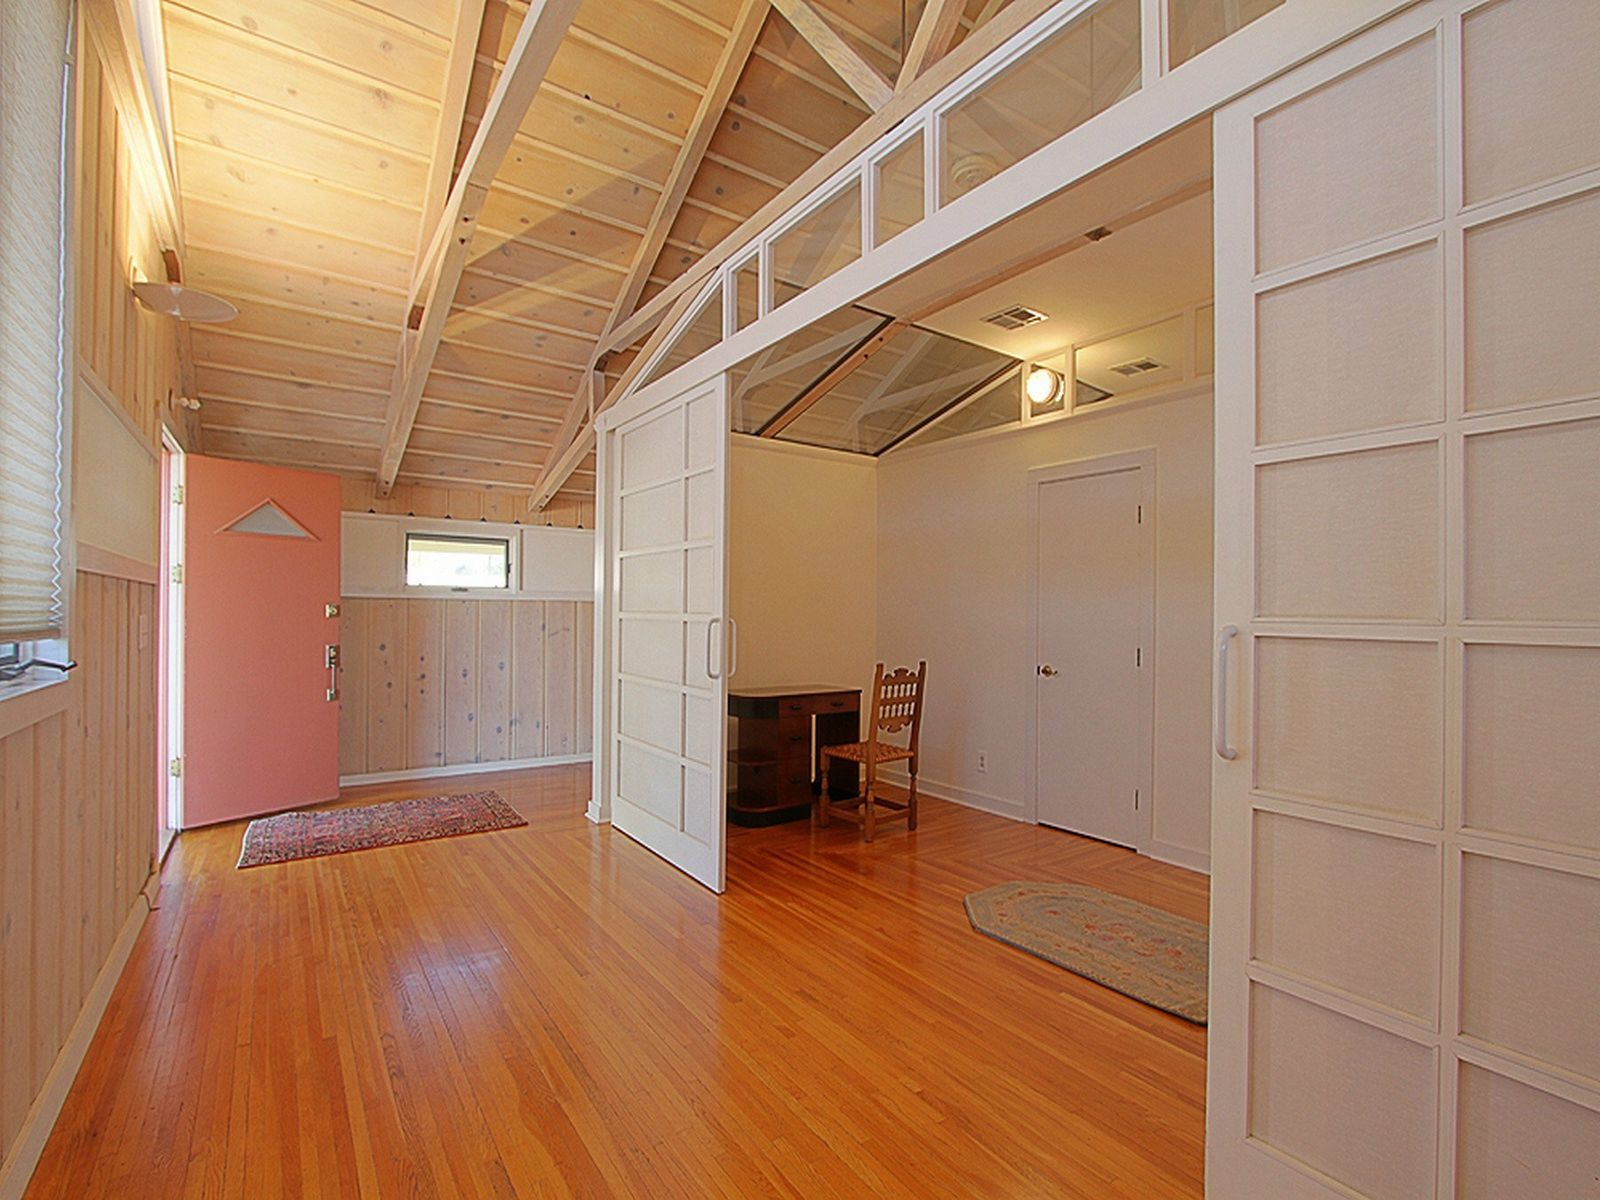 Own A Piece of History - Artists' Loft, Alta Loma CA Multiple Units - Pasadena Real Estate